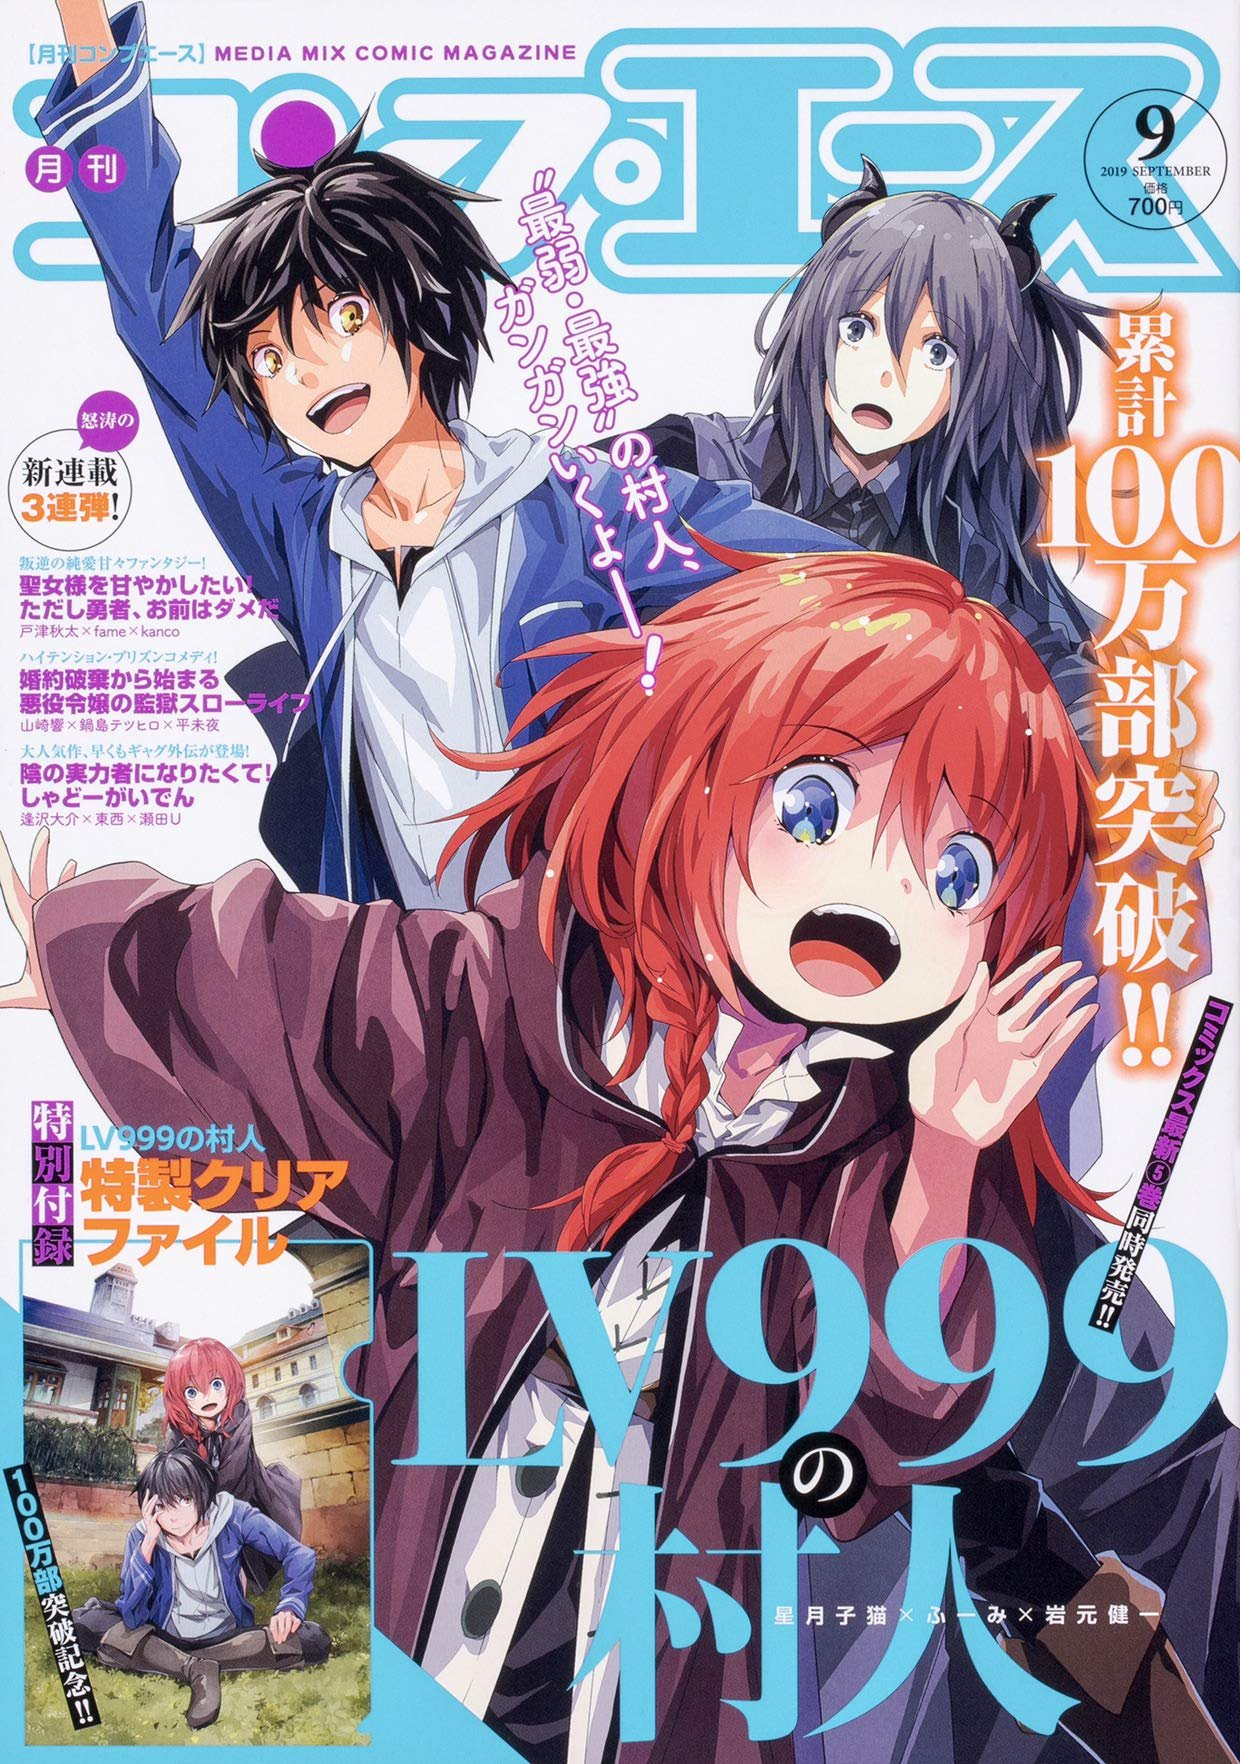 Comp Ace Issue 164 (September 2019) (newsstand)